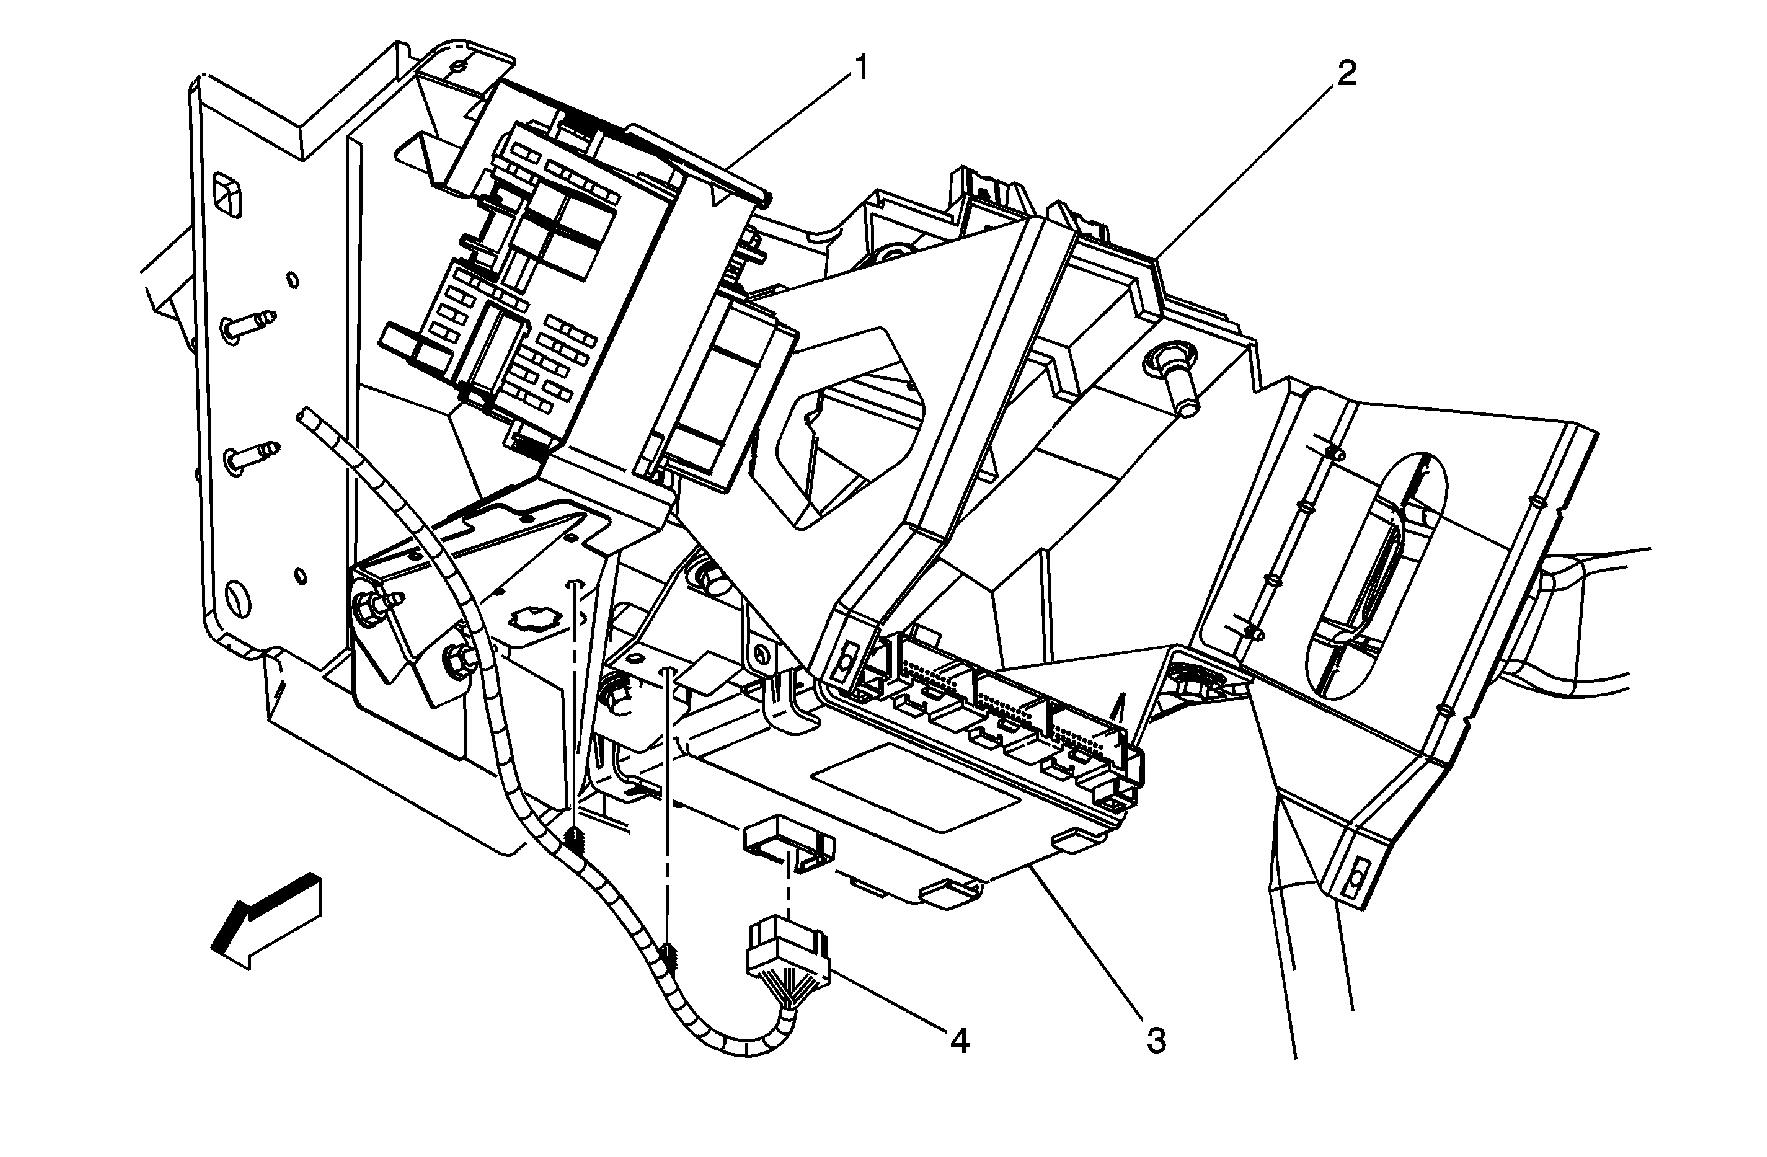 93 Honda Civic Fuse Diagram. Honda. Wiring Diagrams Instructions